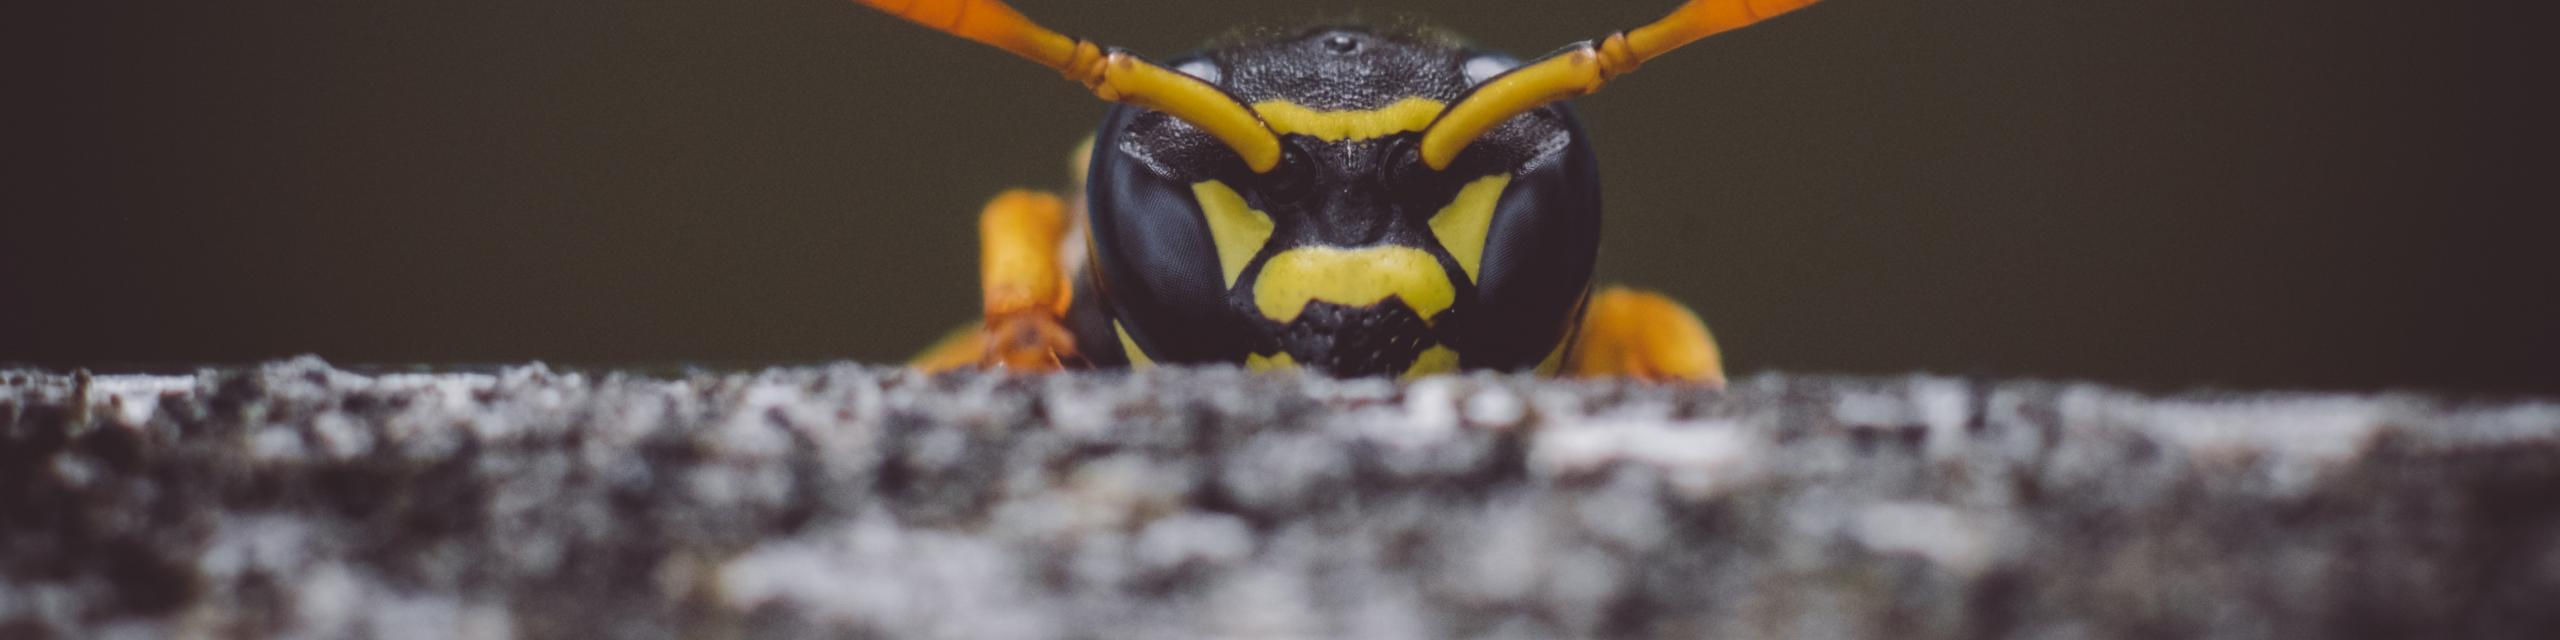 Image of a wasp - Humboldt Termite & Pest